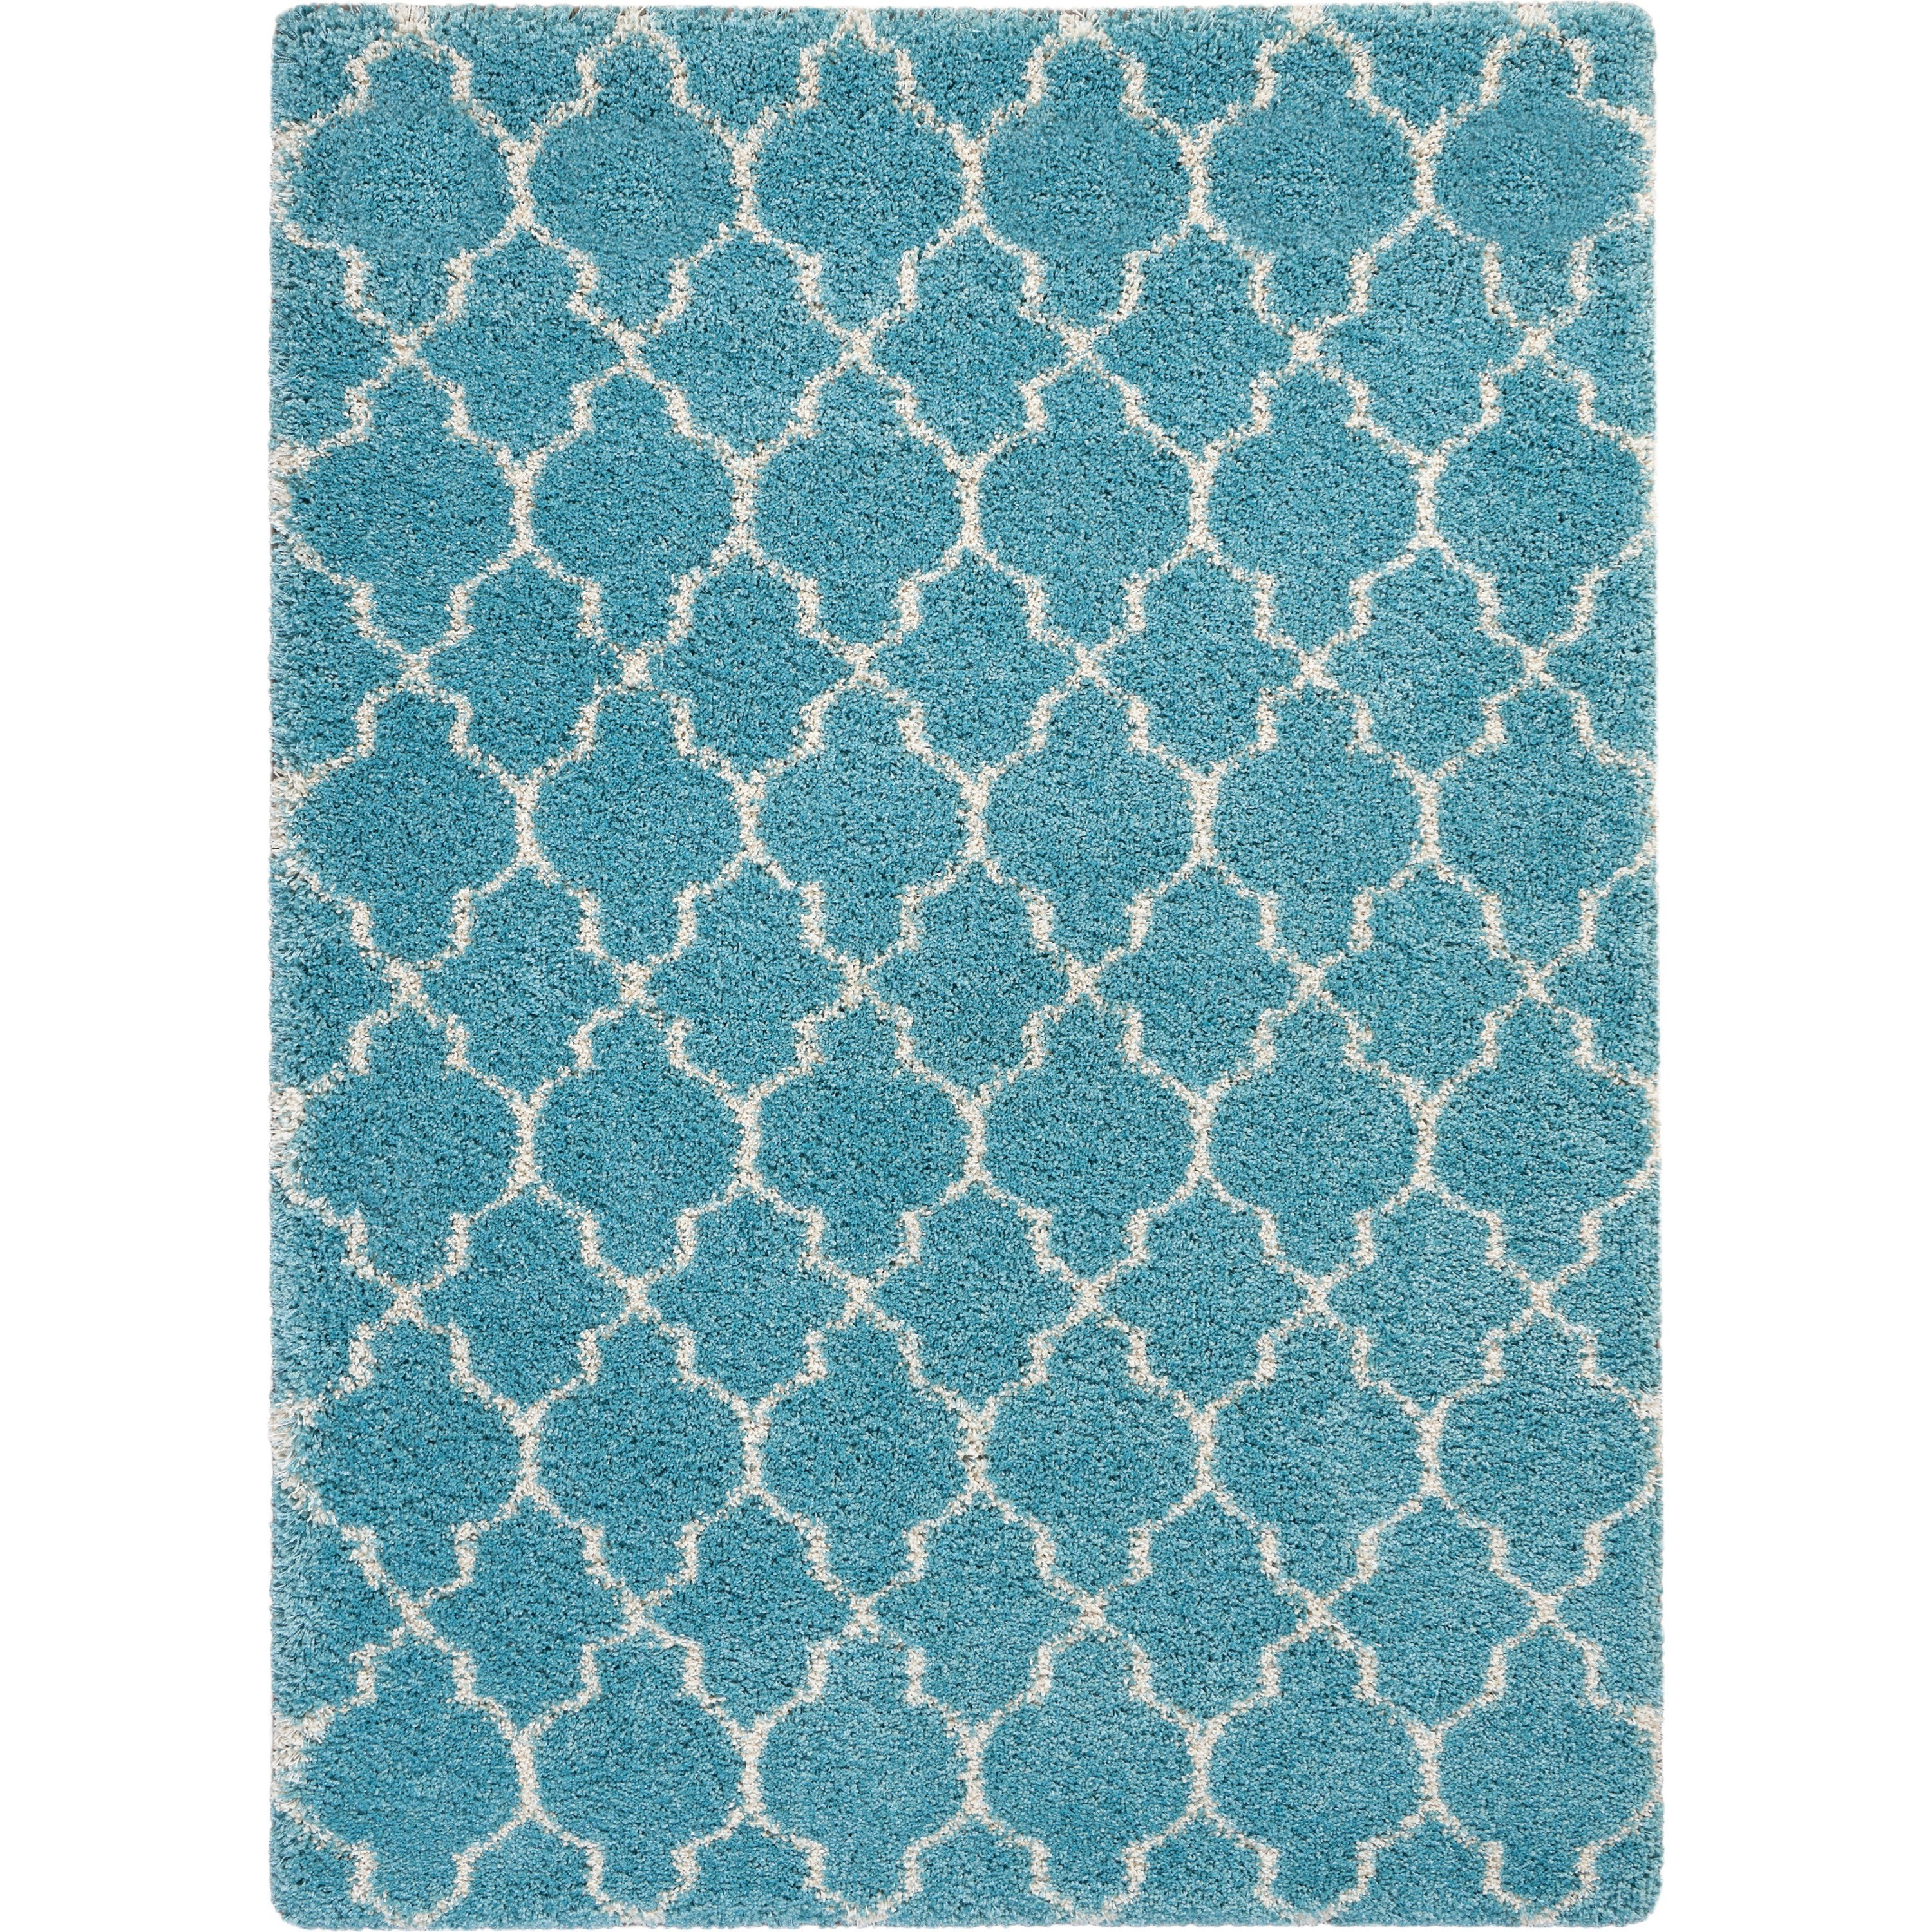 Amore Amore AMOR2 Blue 5'x8' Area Rug by Nourison at Home Collections Furniture